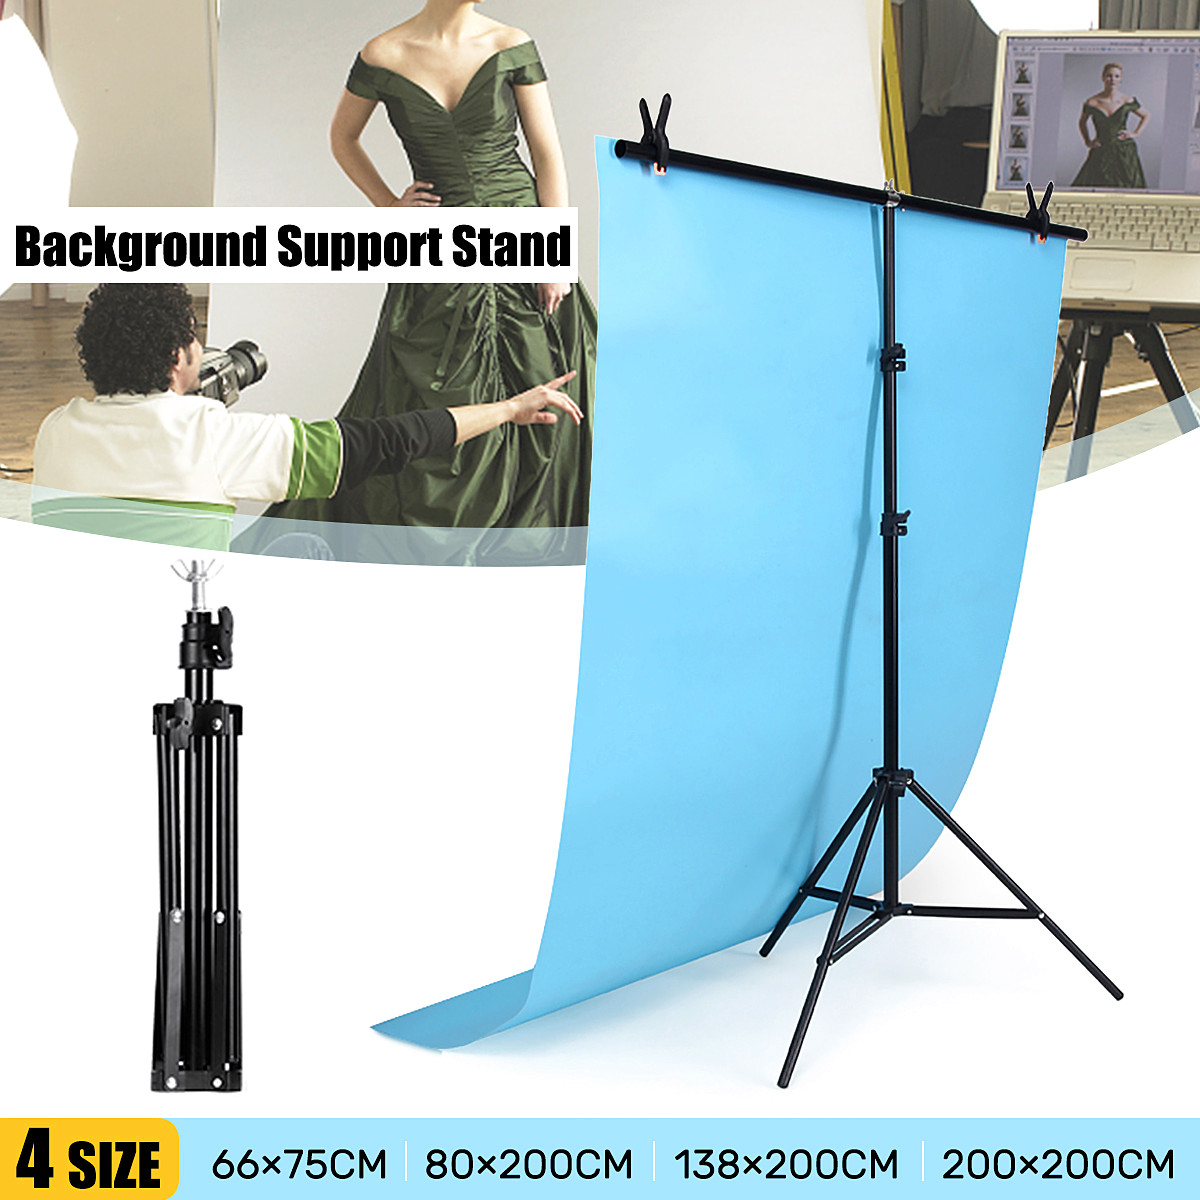 Newest 4 Sizes T-type Adjustable Background Frame Support Stand Metal Holder Photo Studio Backdrop System Photography Equipment(China)